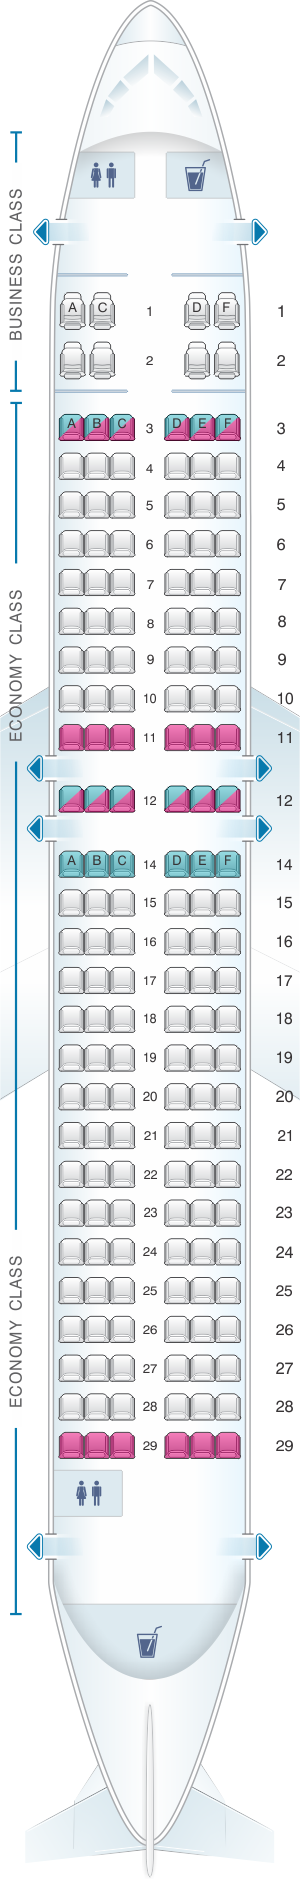 Seat map for Bulgaria Air Airbus A320 with business class